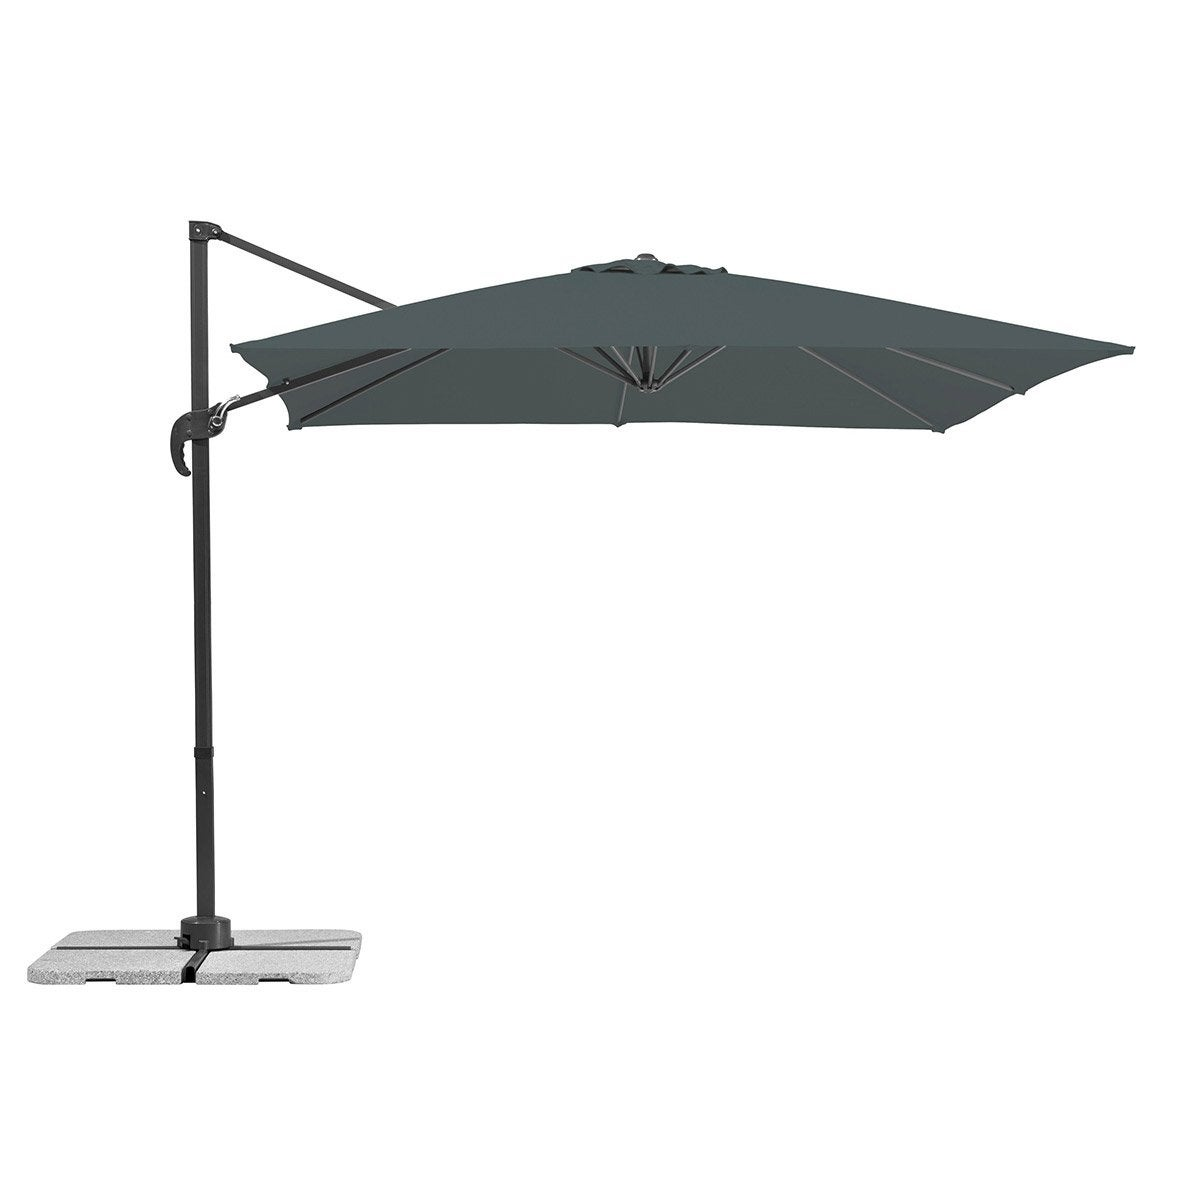 parasol deporte inclinable perfect autres vues with parasol deporte inclinable parasol deporte. Black Bedroom Furniture Sets. Home Design Ideas